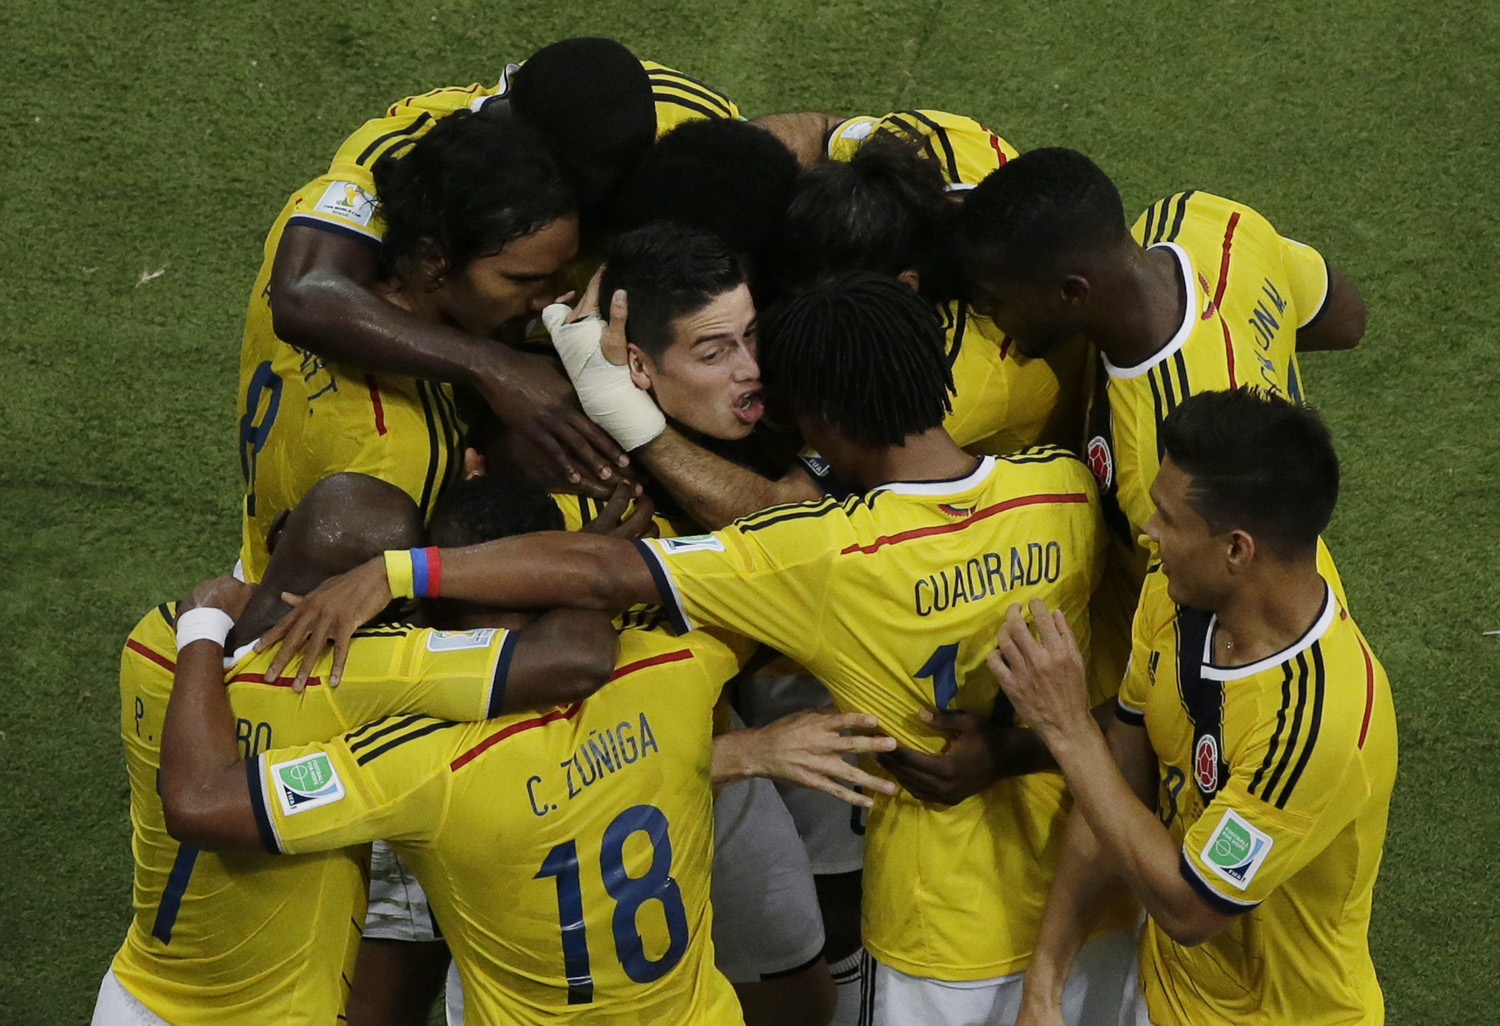 Colombia's midfielder James Rodriguez (C) is mobbed by teammates as he celebrates scoring a goal during the Round of 16 football match between Colombia and Uruguay at The Maracana Stadium in Rio de Janeiro on June 28, 2014.